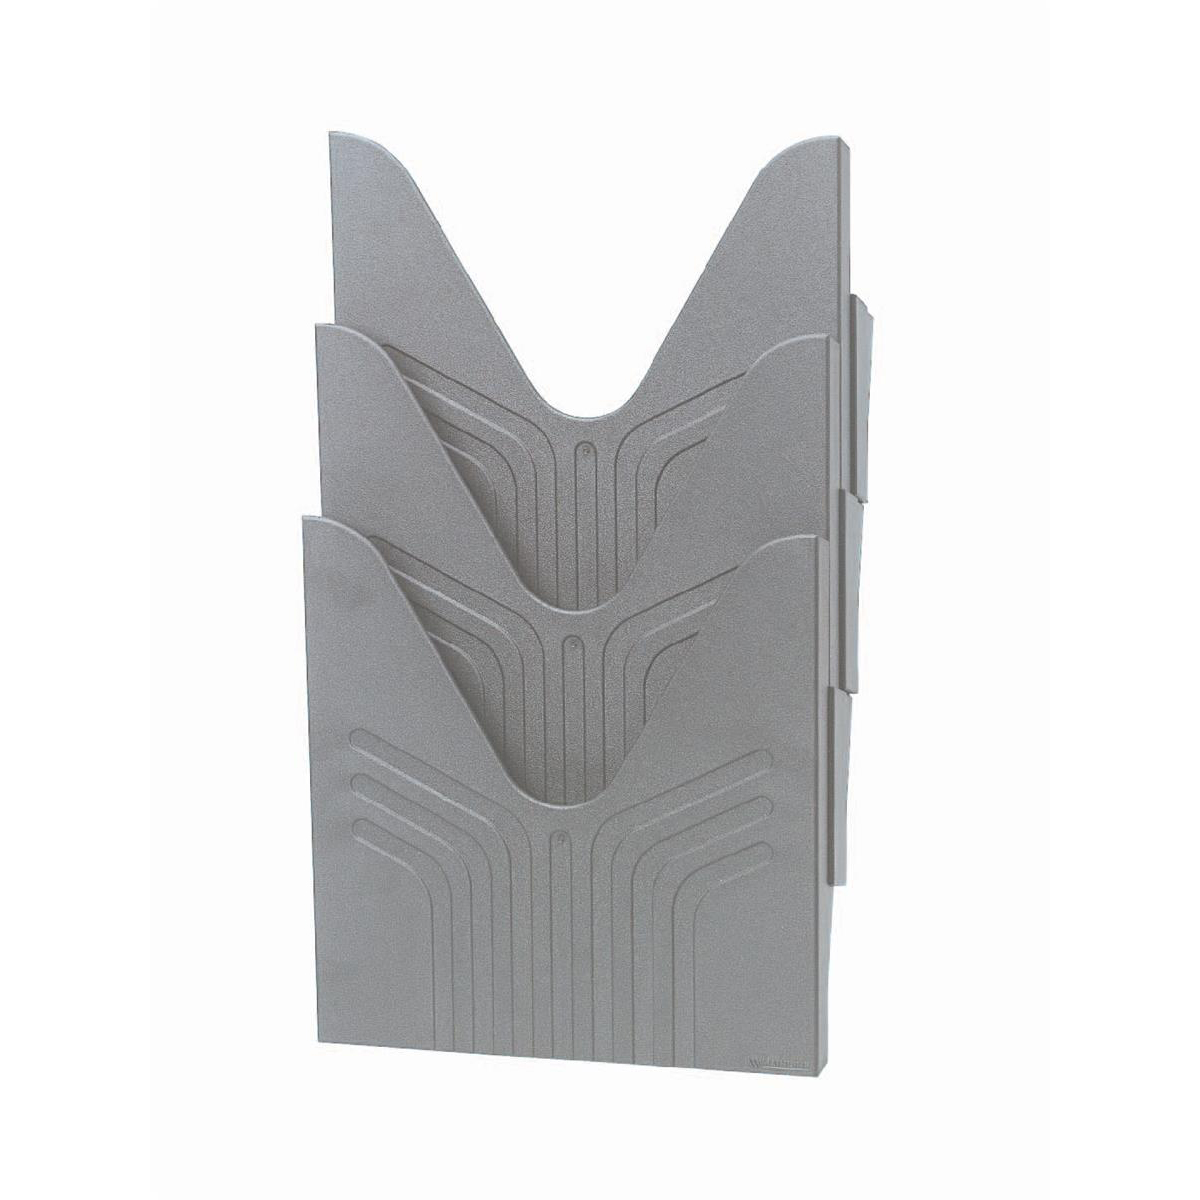 Avery Mainline Display File A4 Grey Ref 144-3GRY [Pack 3]